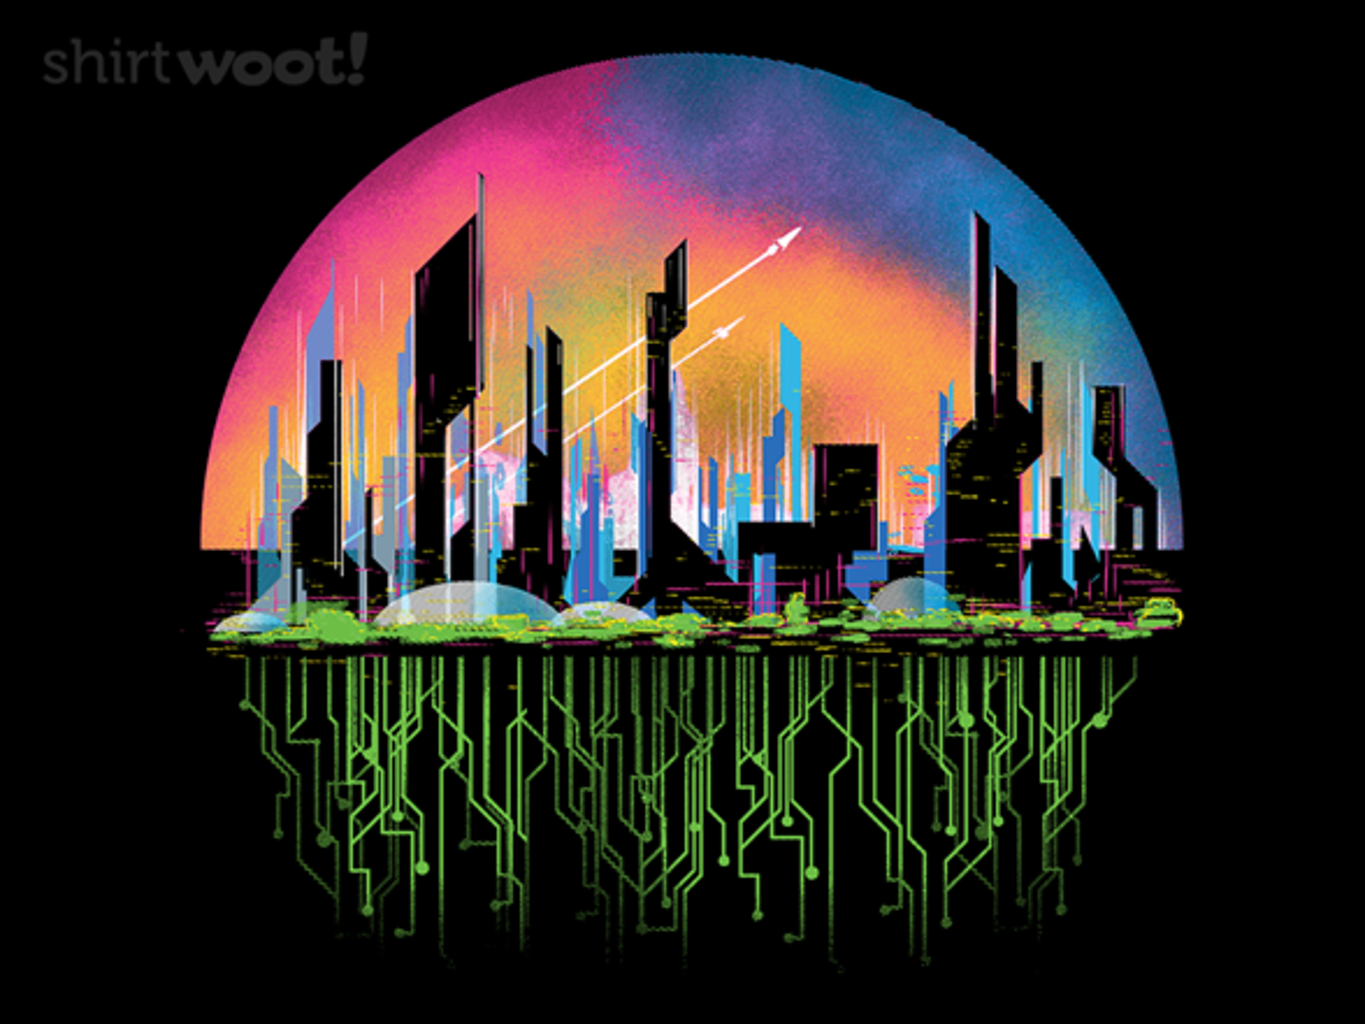 Woot!: City of Tomorrow